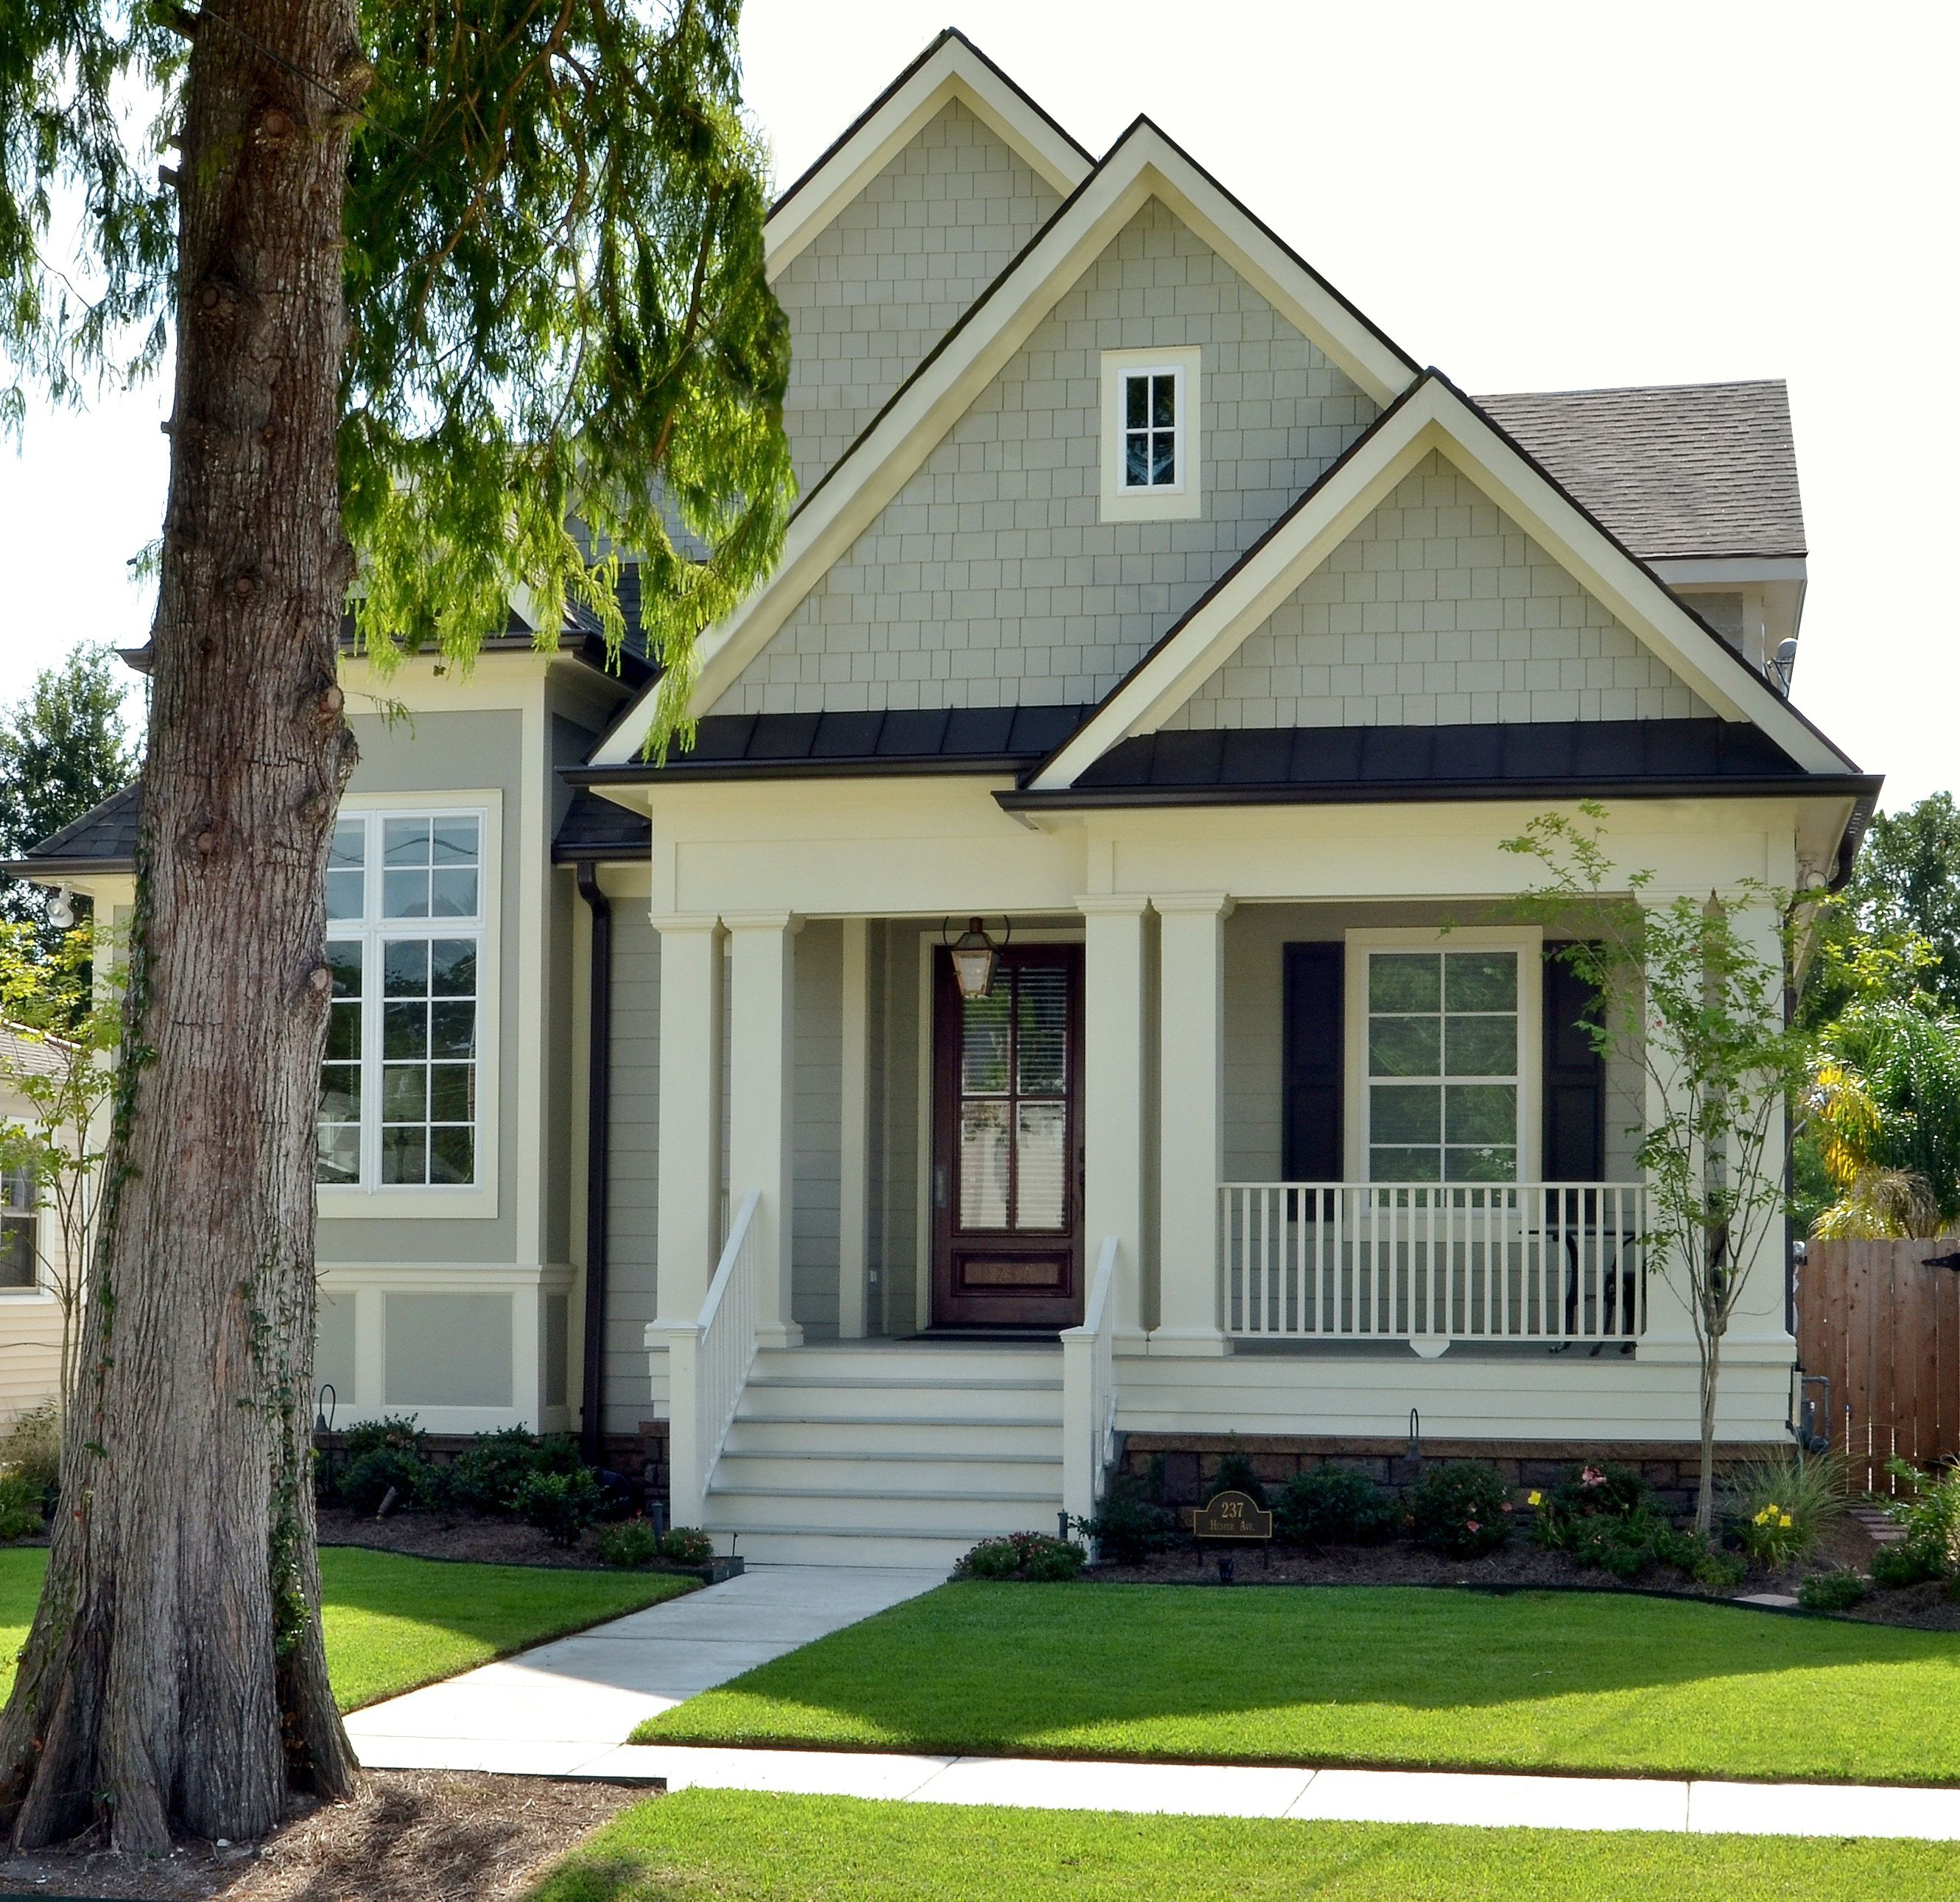 Explore Craftsman Homes and more!